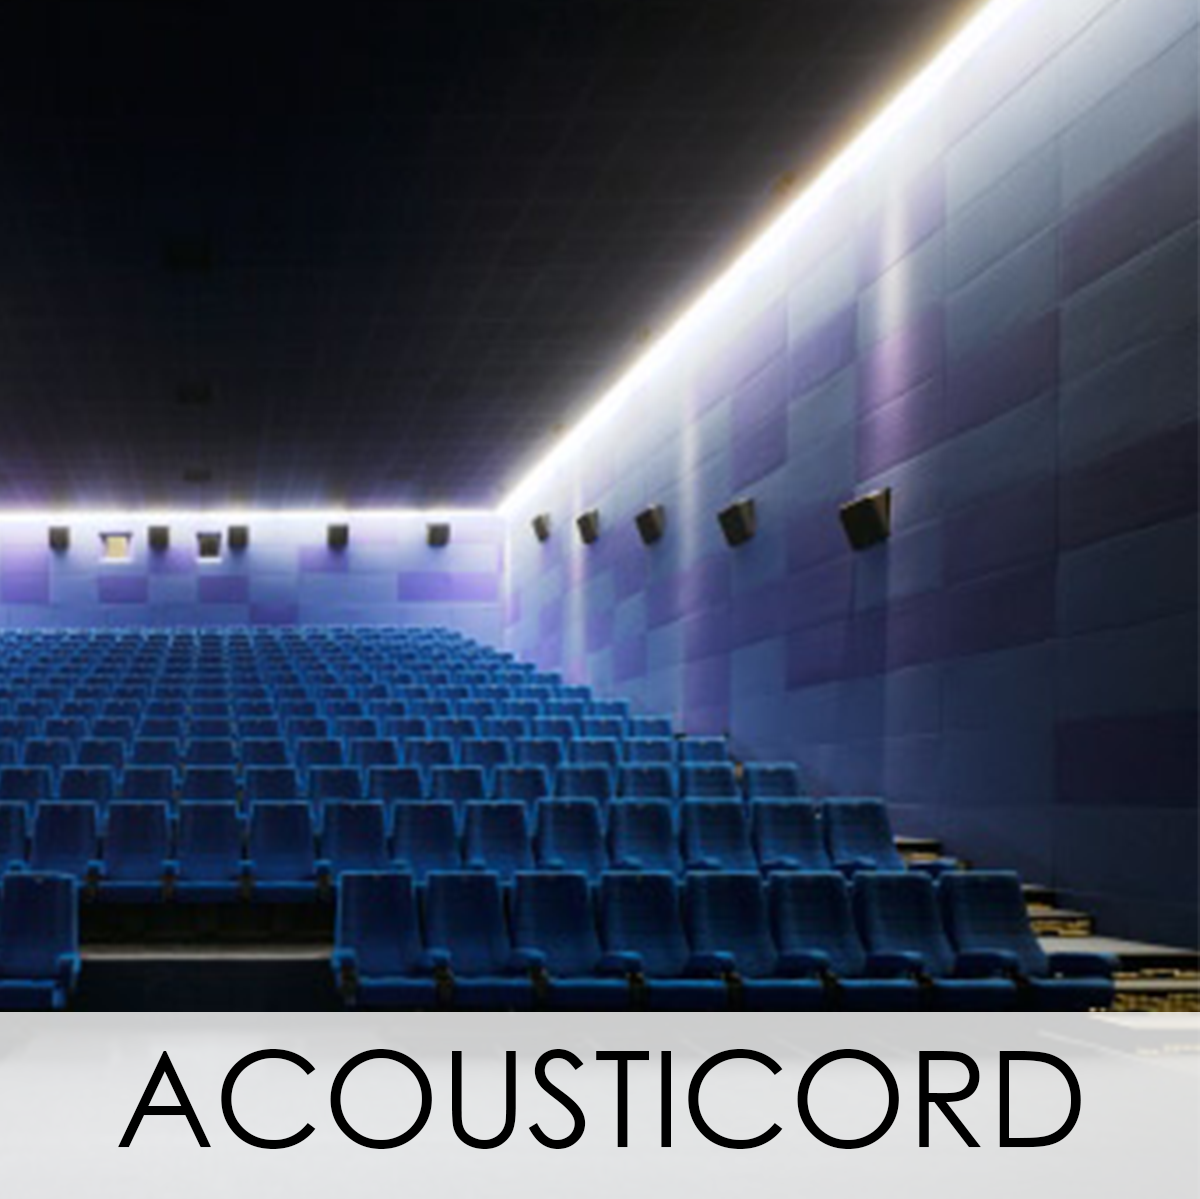 Acousticord Acoustical, LEVEY Wallcovering